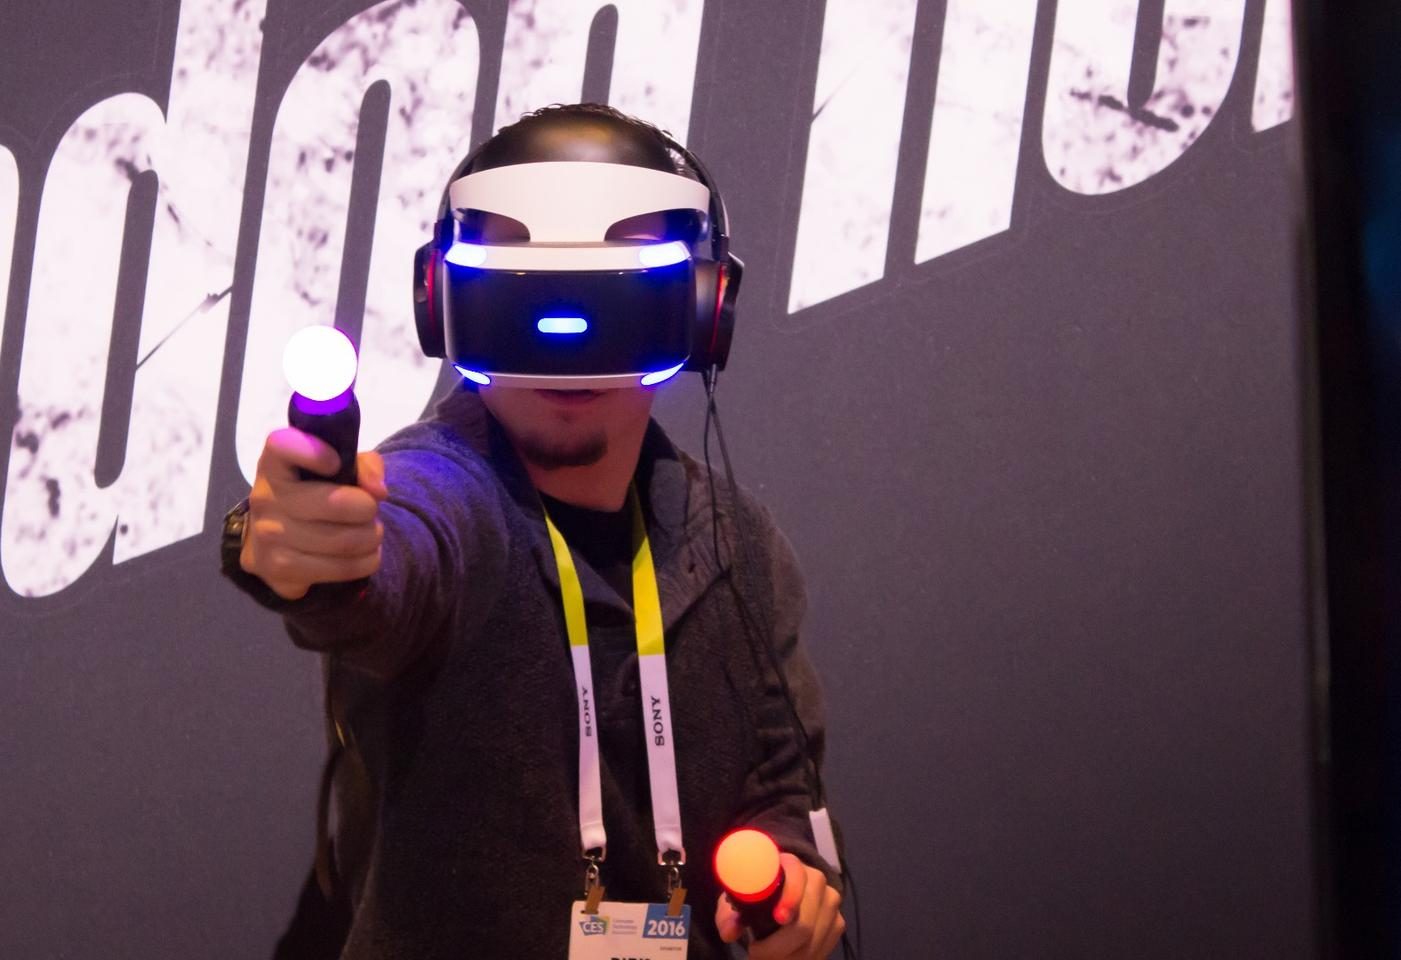 A CES attendee trying out PlayStation VR